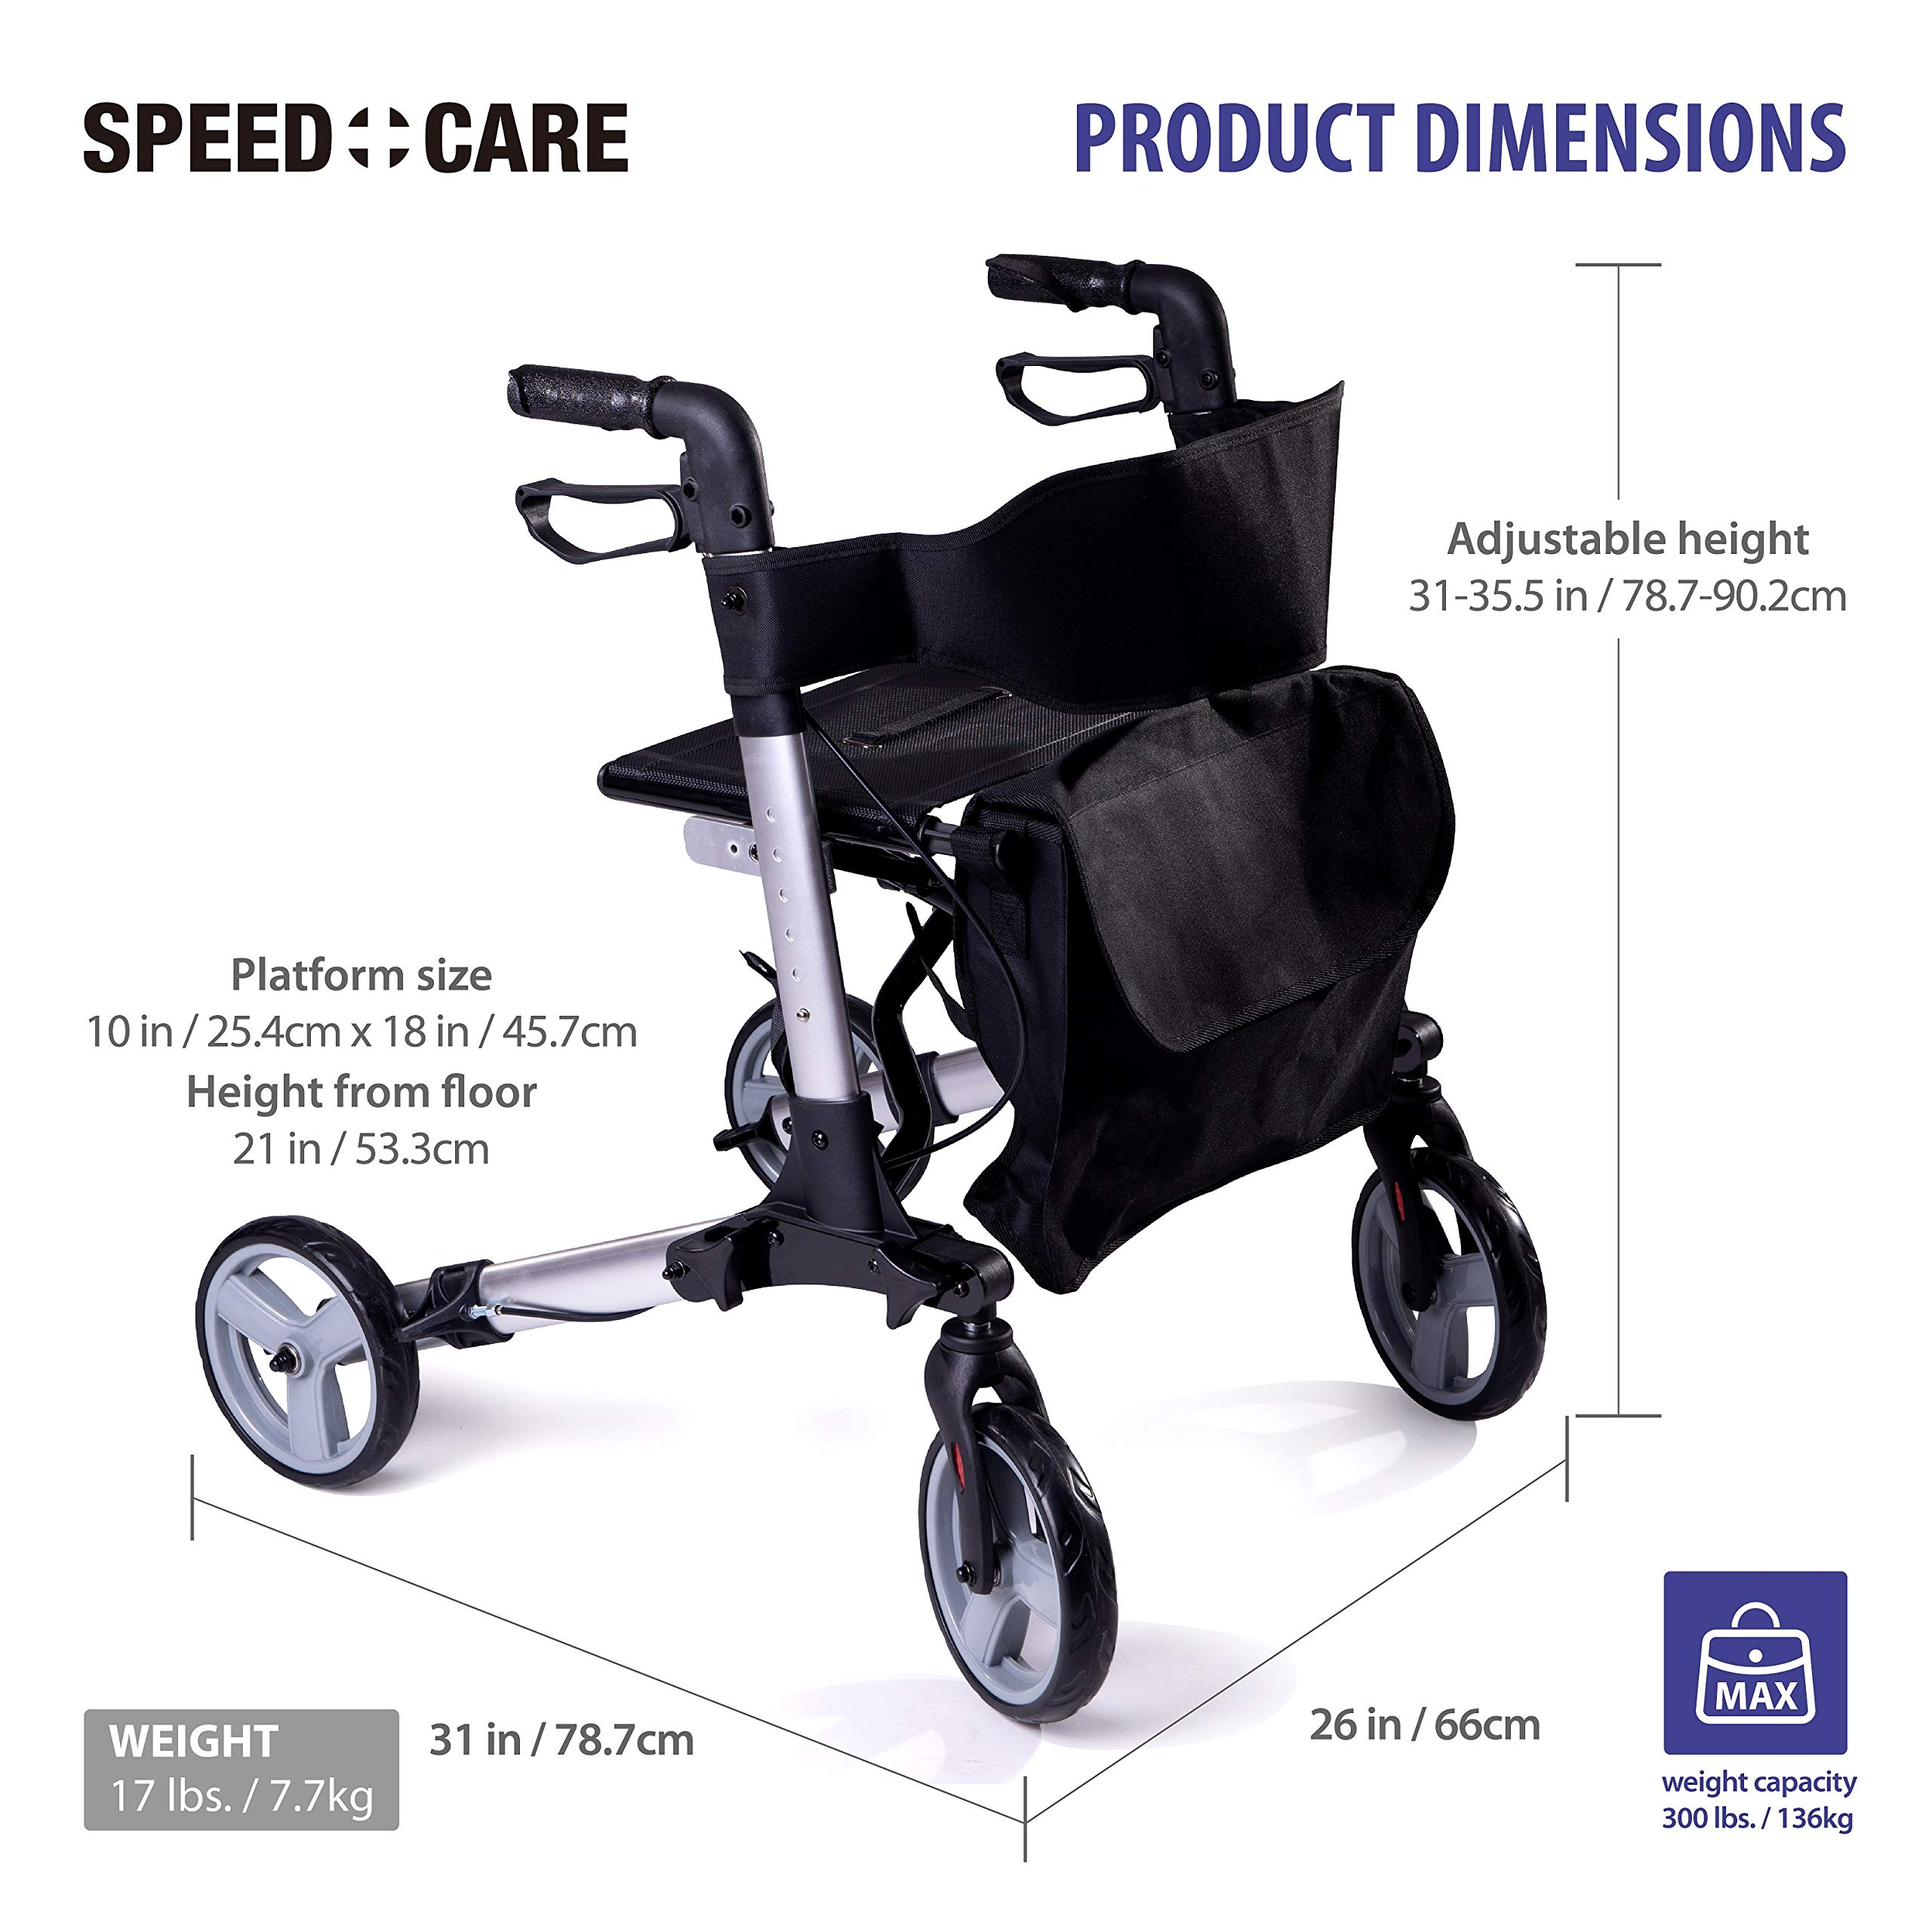 Speedcare FDA Approved Euro Style Deluxe Dual Brake Rollator Walker with Seat, Bonus Saddle Bag Included